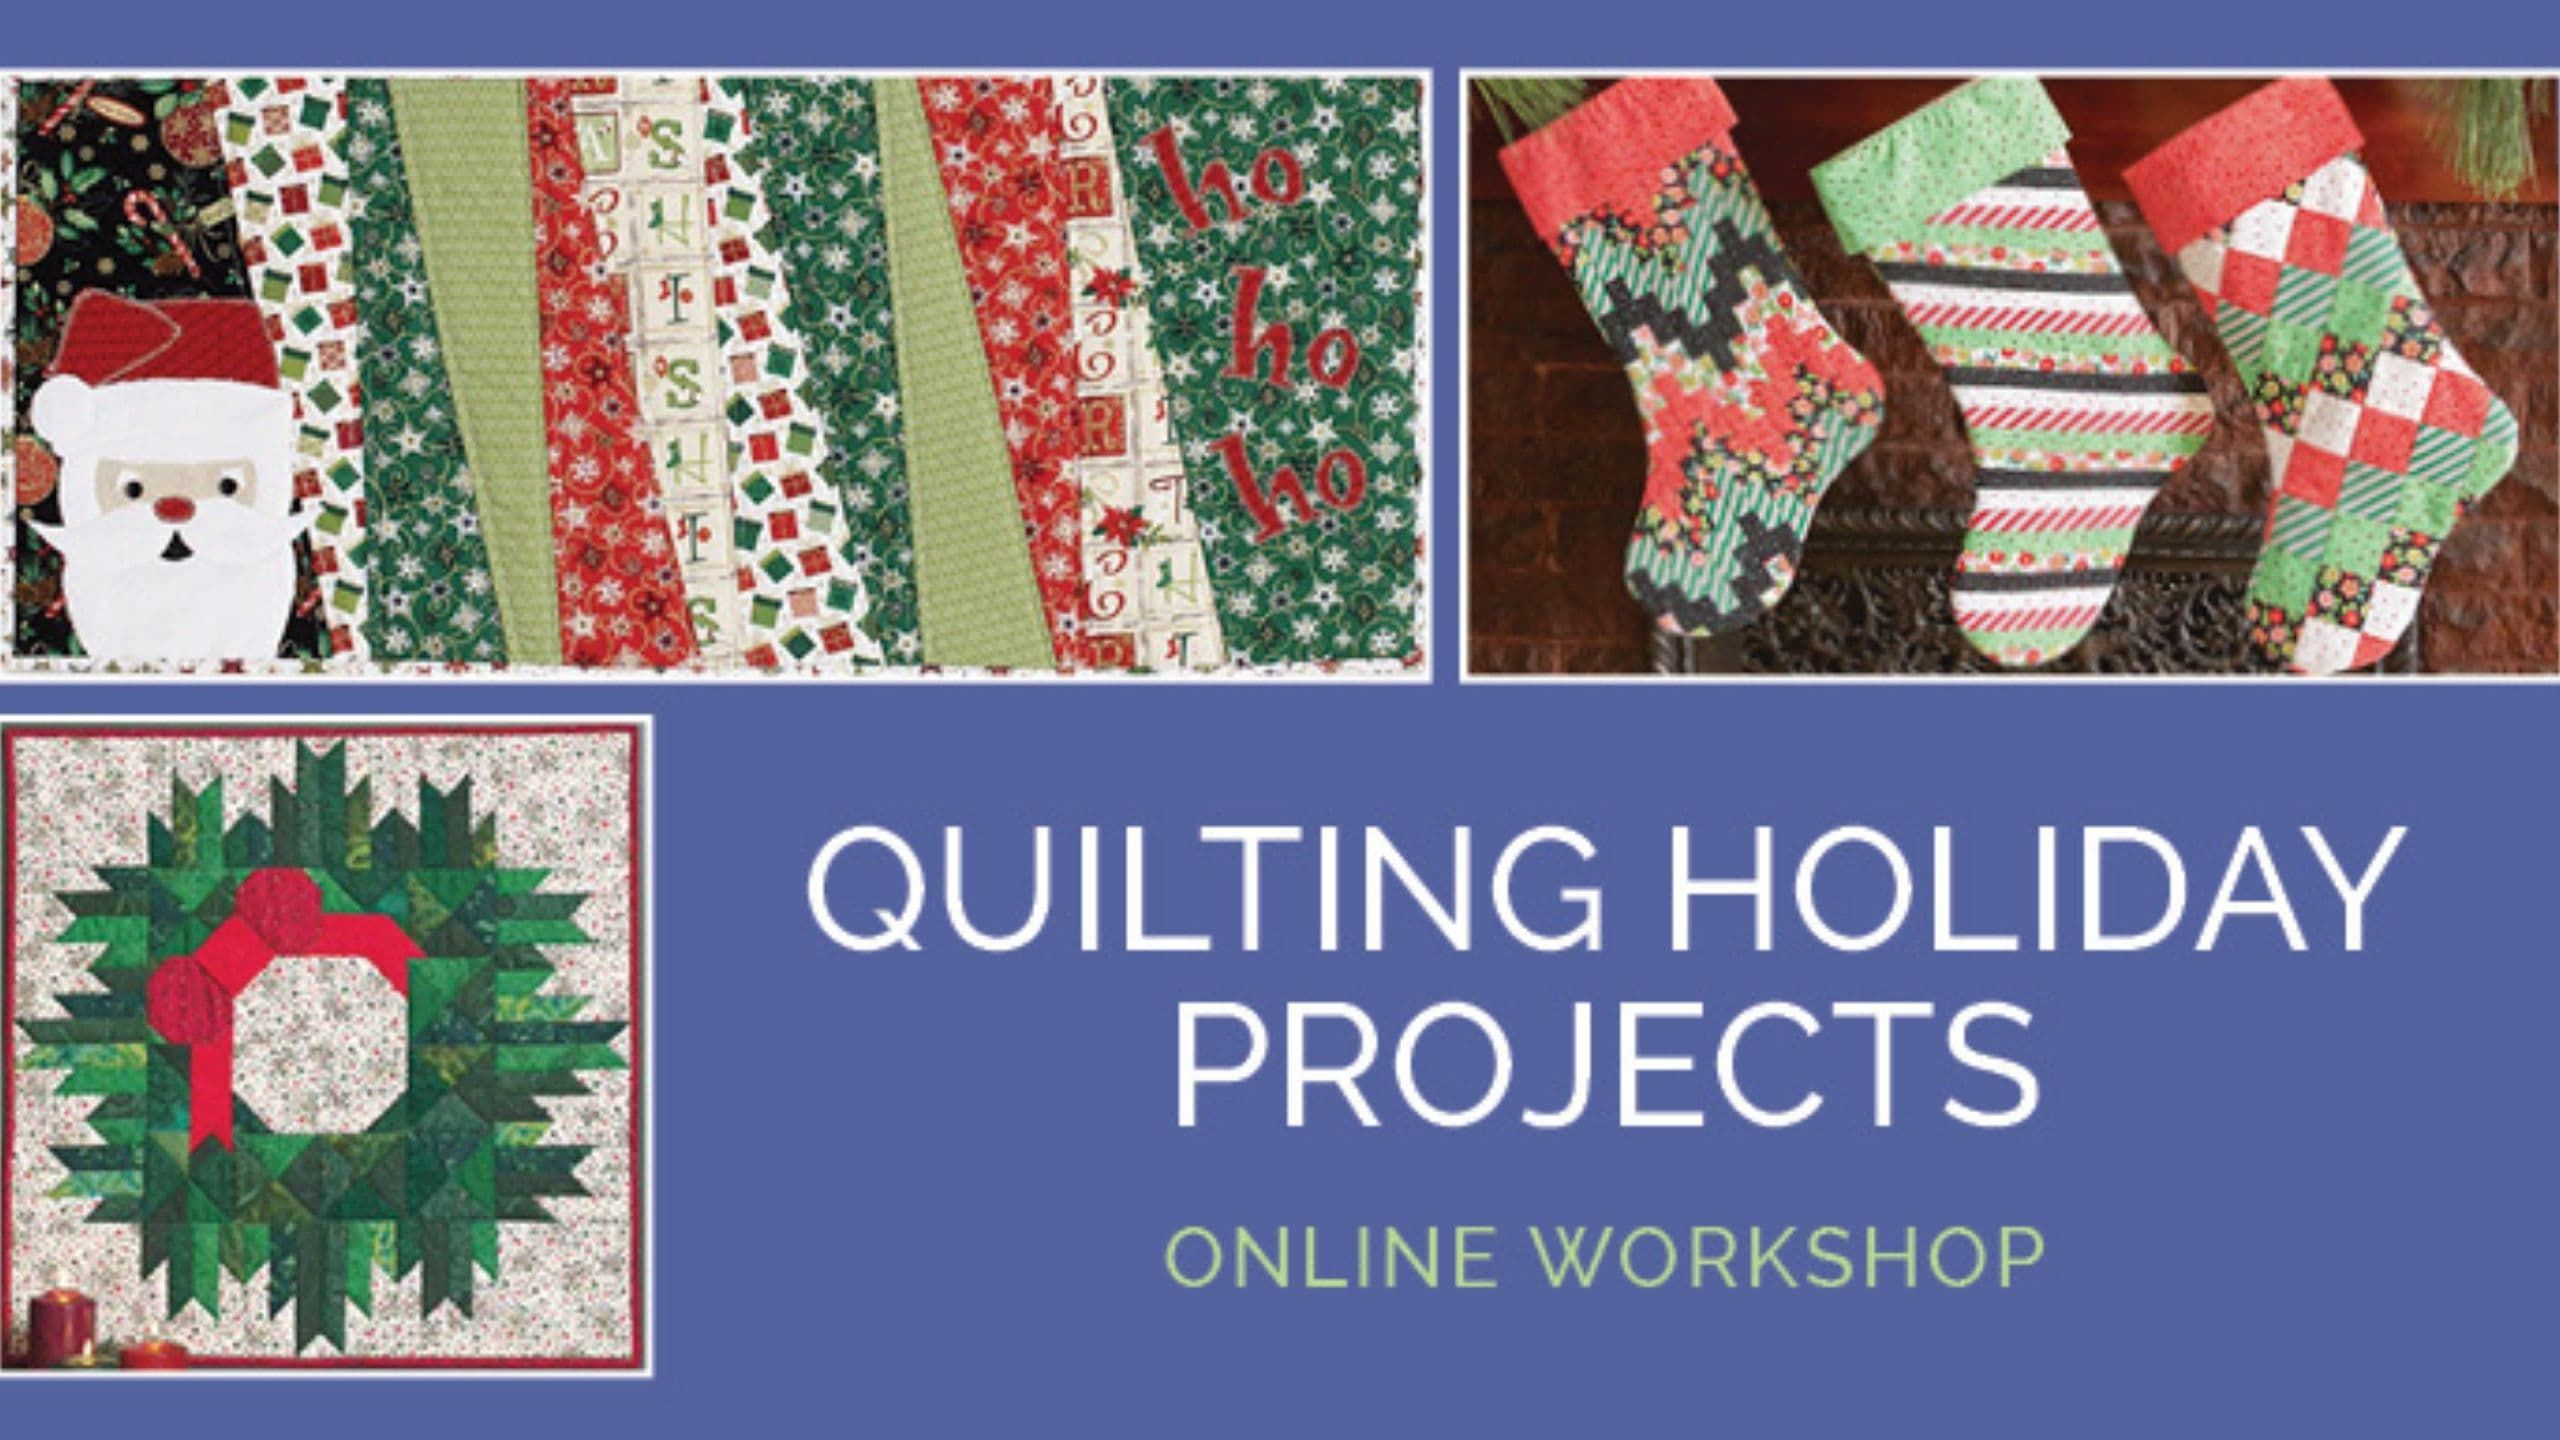 Holiday Quilting Projects Workshop promo image